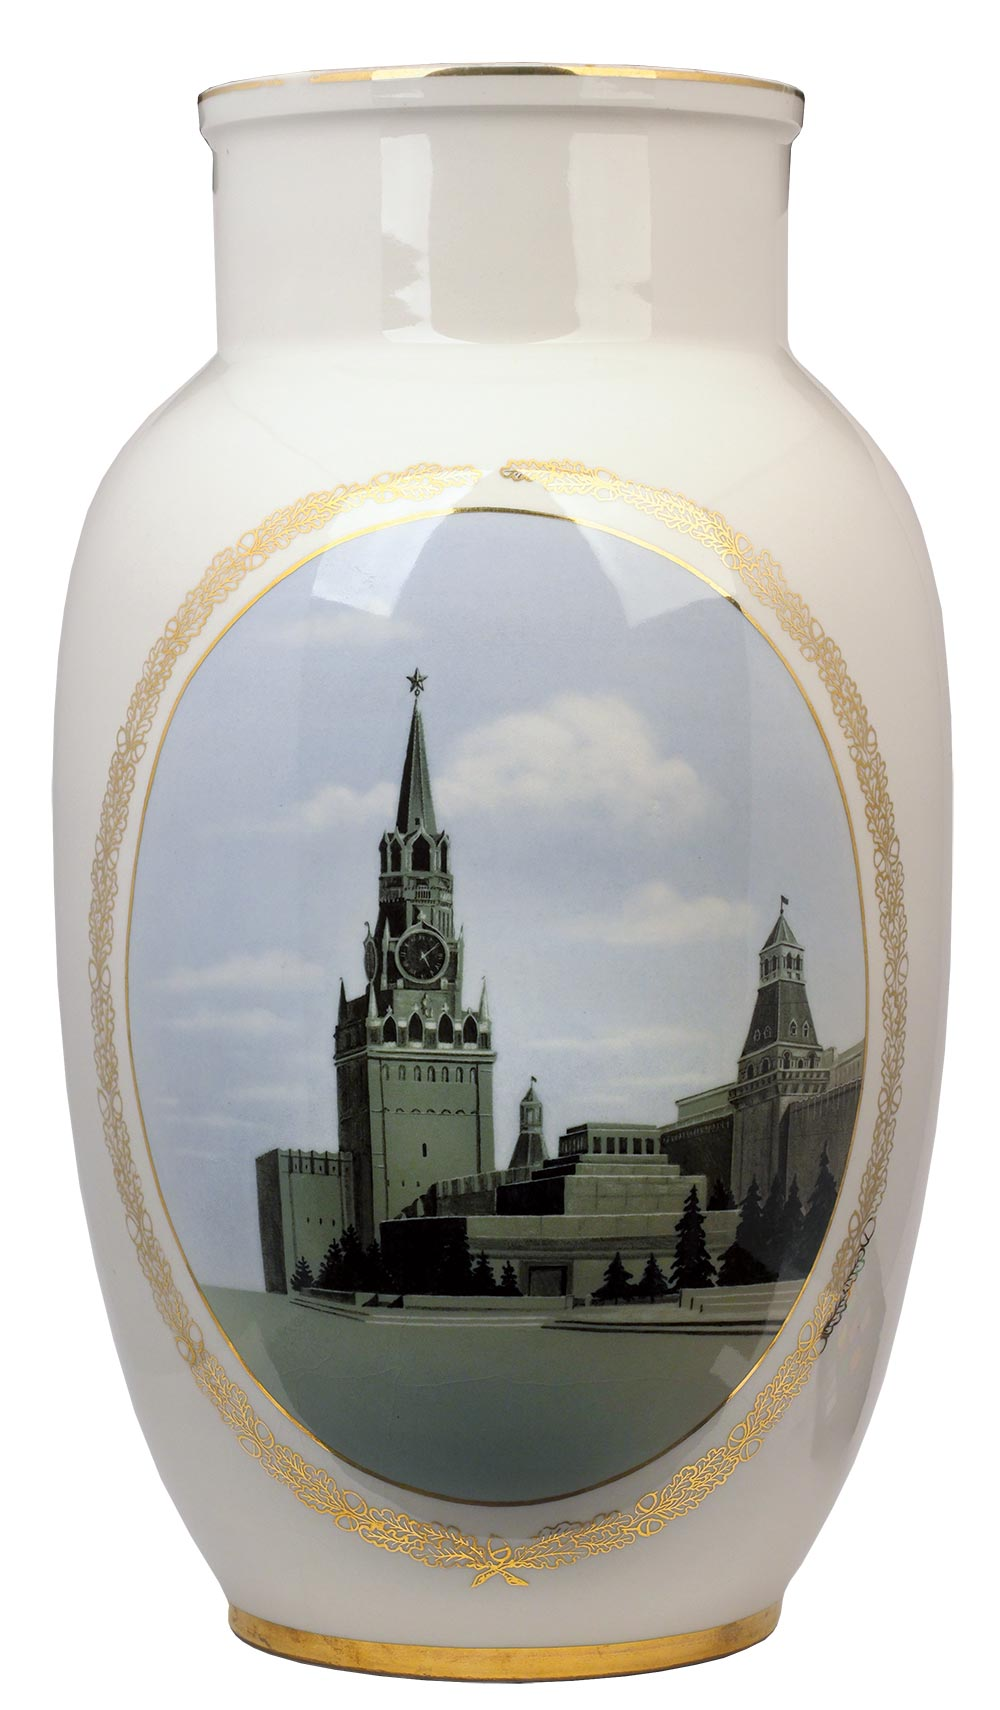 Vase with the image of the Spasskaya Tower and the Mausoleum.